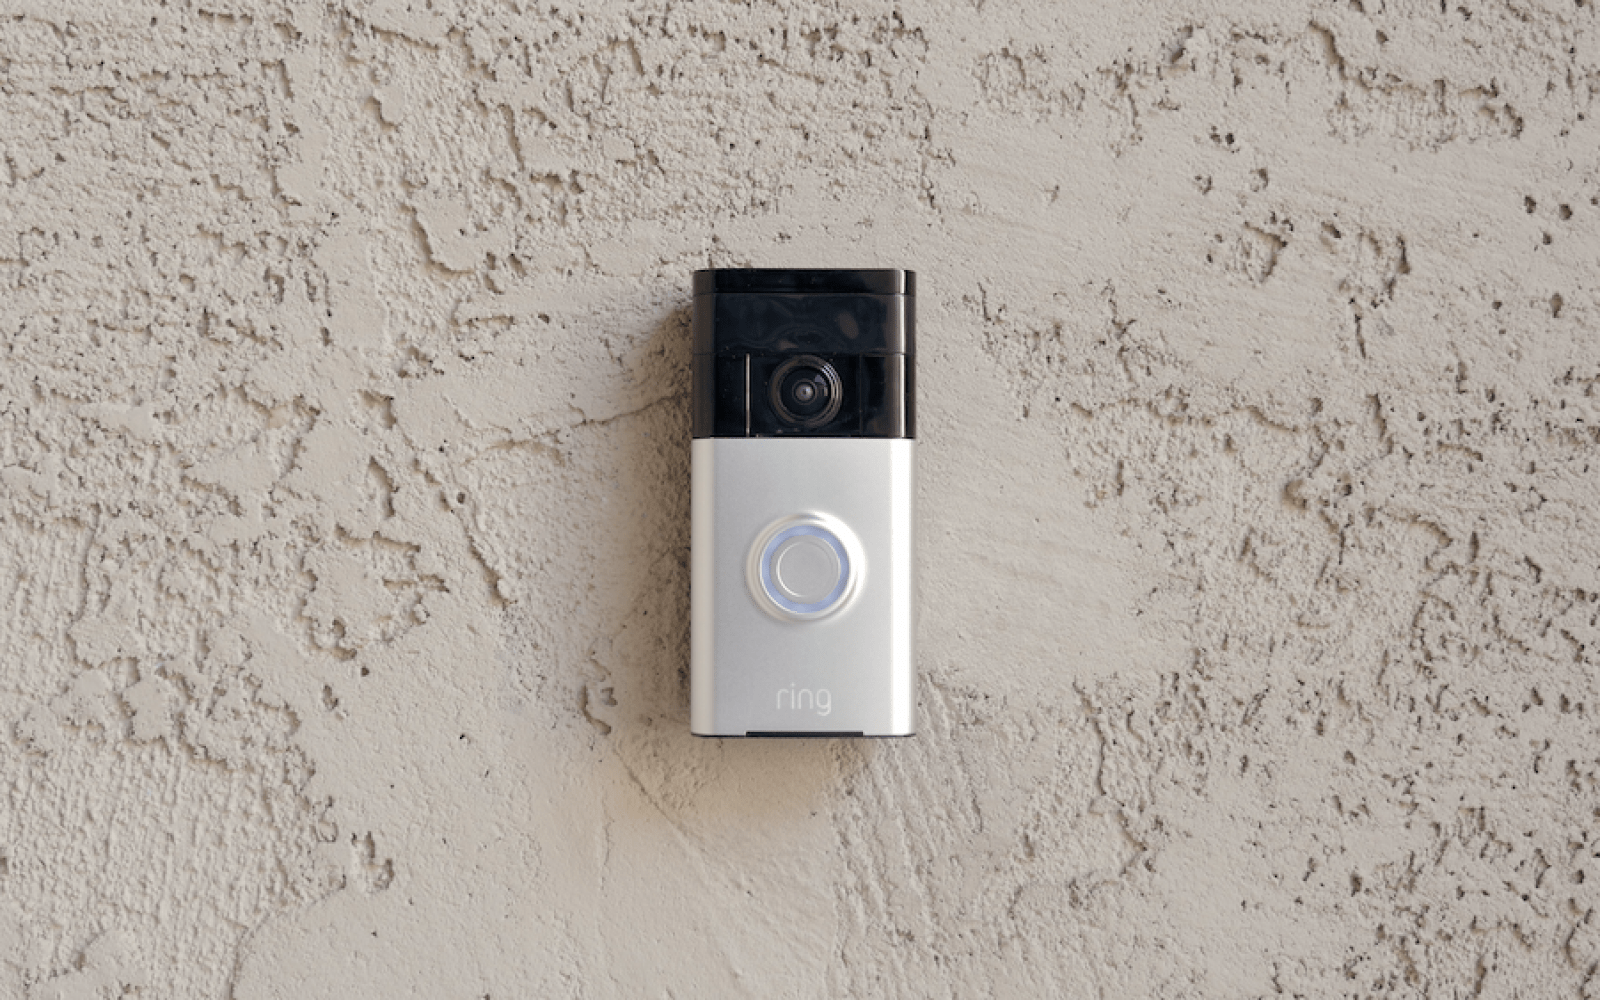 Review Ring Video Doorbell Is A Simple Smart Home Accessory That Wireless Network Diagram Puts Security First